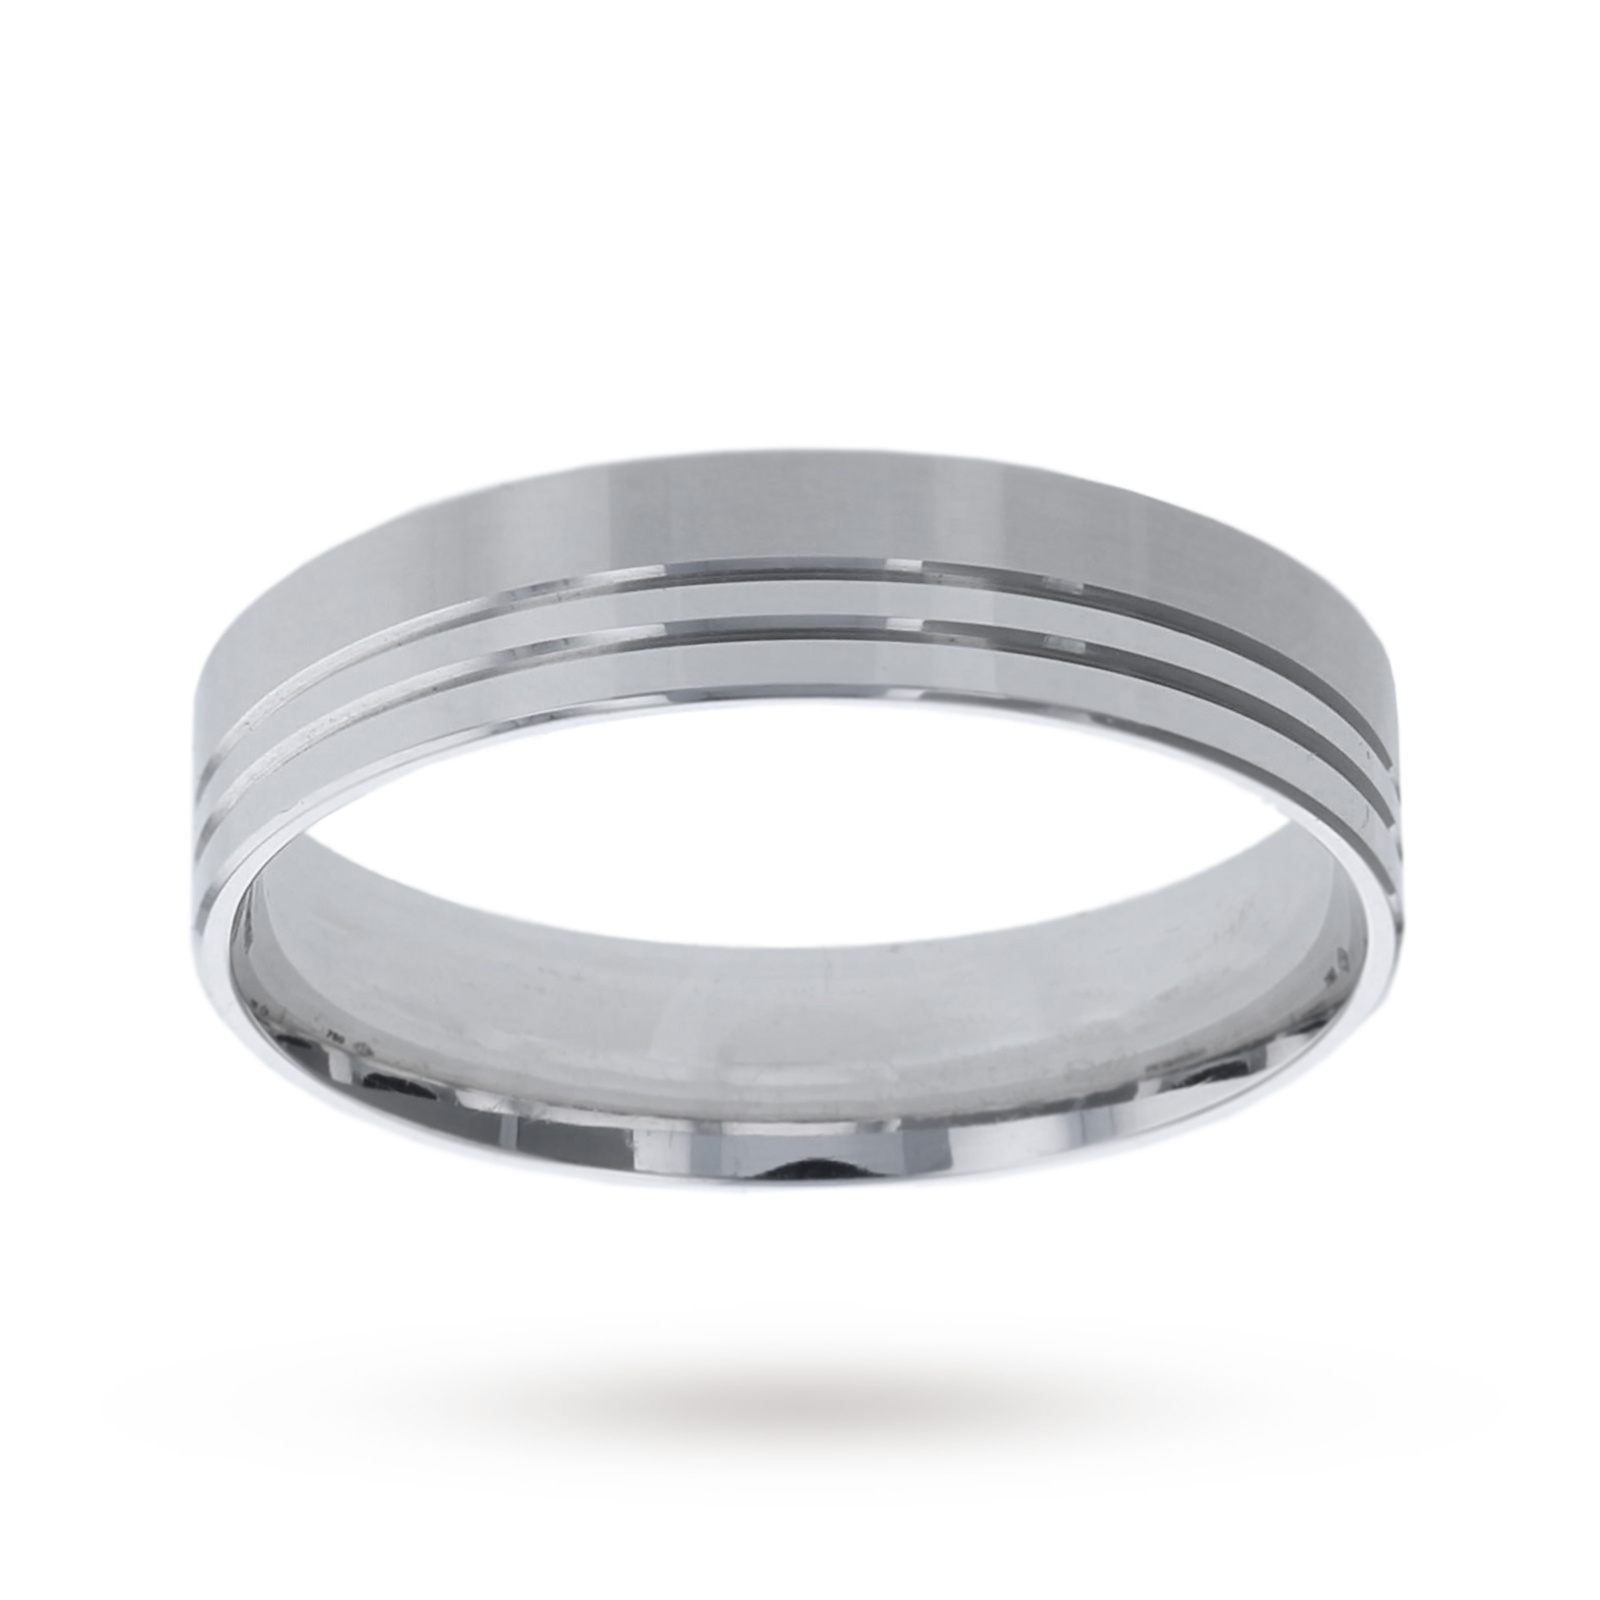 6mm gents heavy flat band in 18 carat white gold - Ring Size Z3